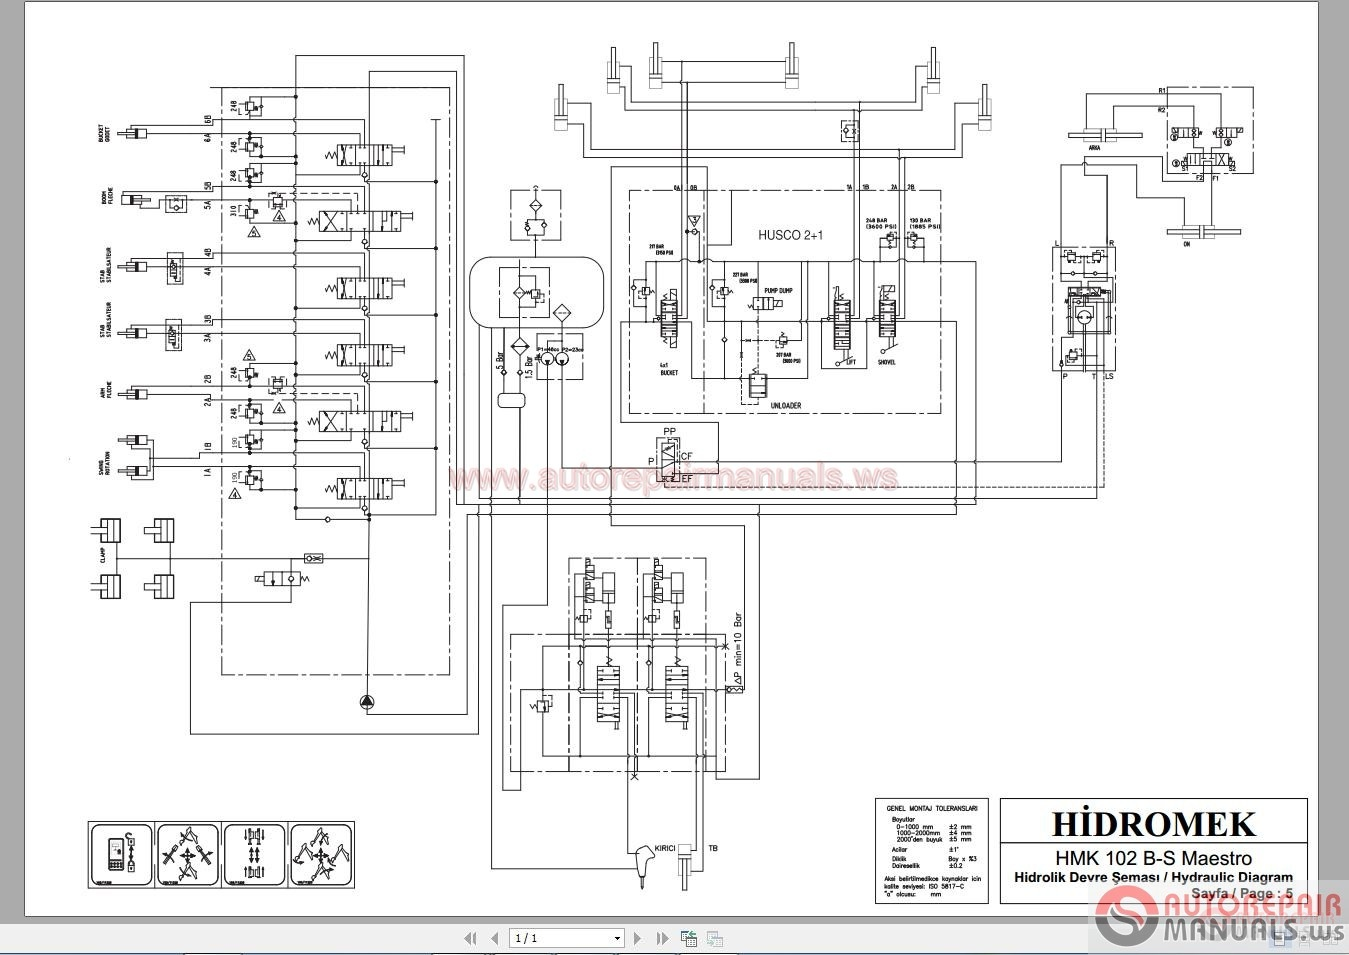 1991 Mercury Outboard Manual Download 15 Hp 15hp 65 Motor Wiring Diagram Sei Manufactures St 6989 6556 756f9a 756g9b 65795 757g9b 758e96b 758g96b 756e96b 756g96b Related Operators Pdf Ebooks Twentieth Century String Quartet